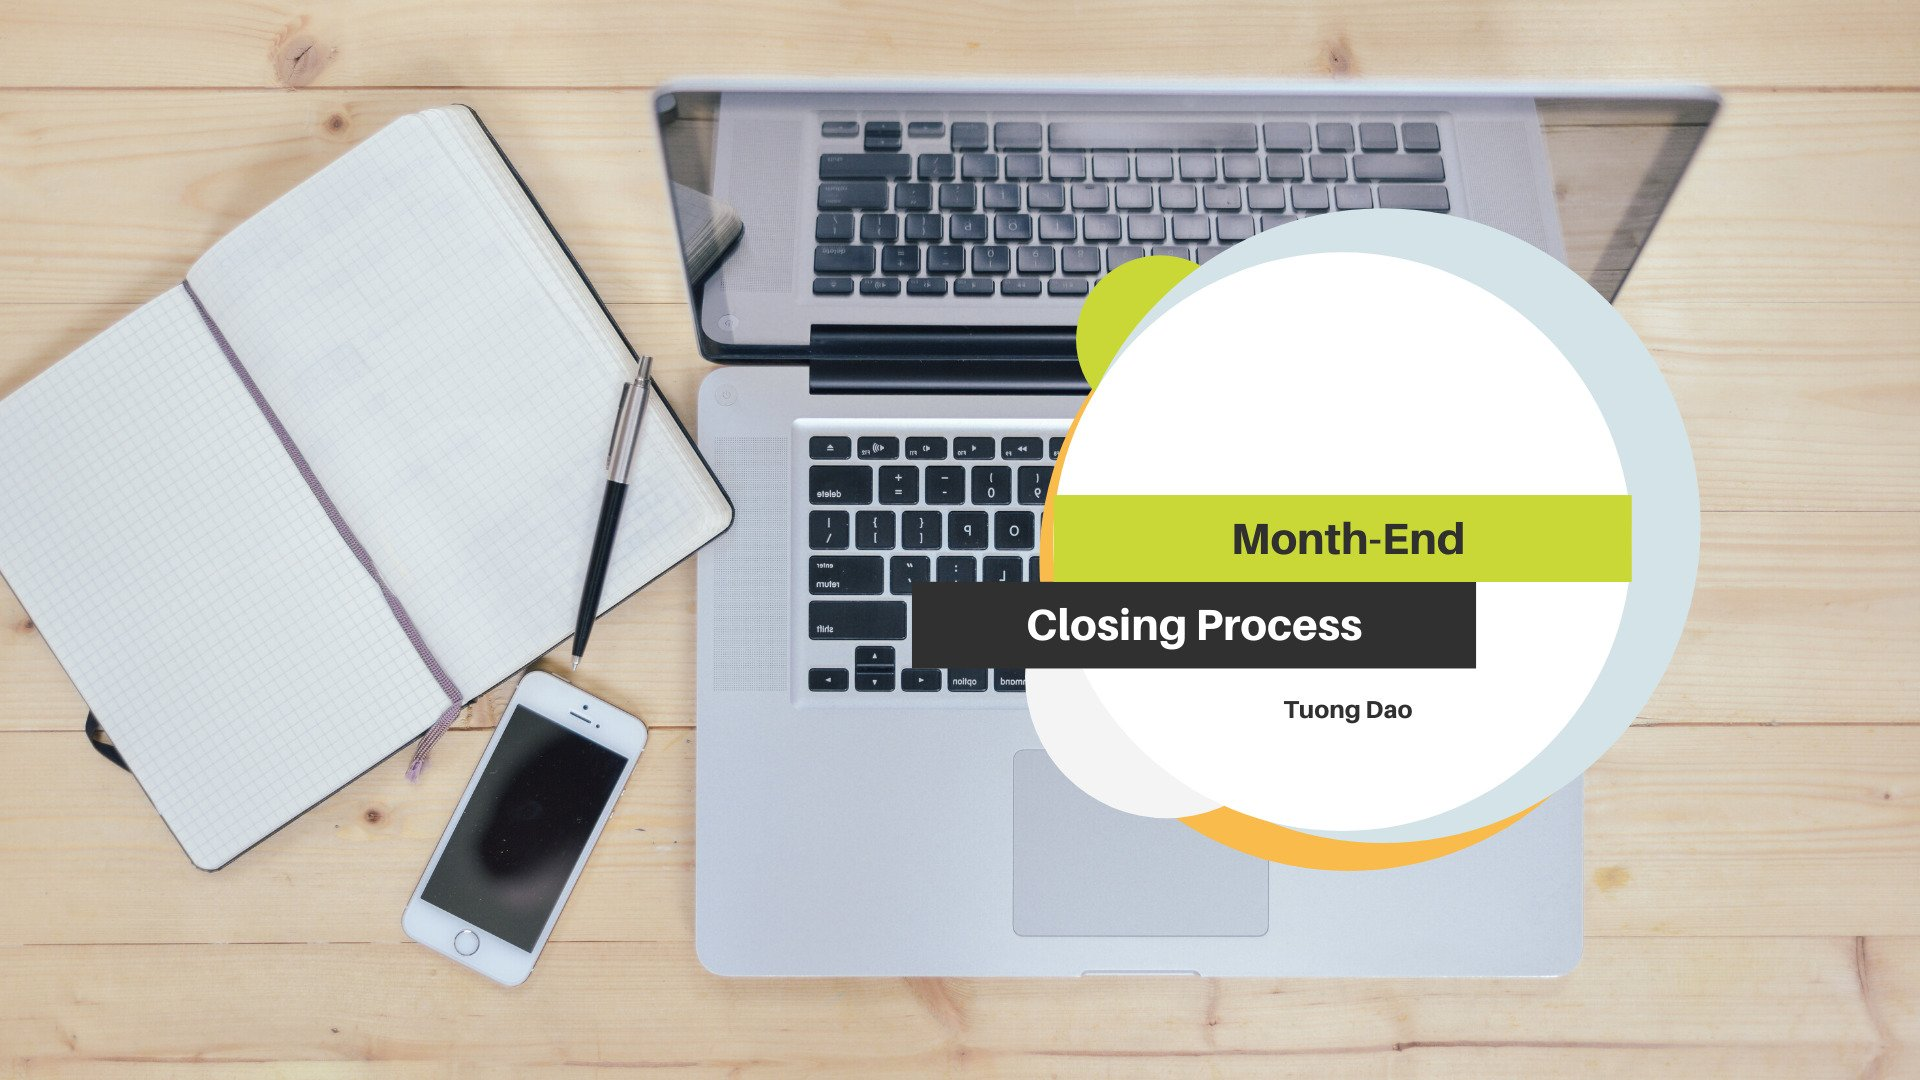 Month-End Closing Process in A Public Company